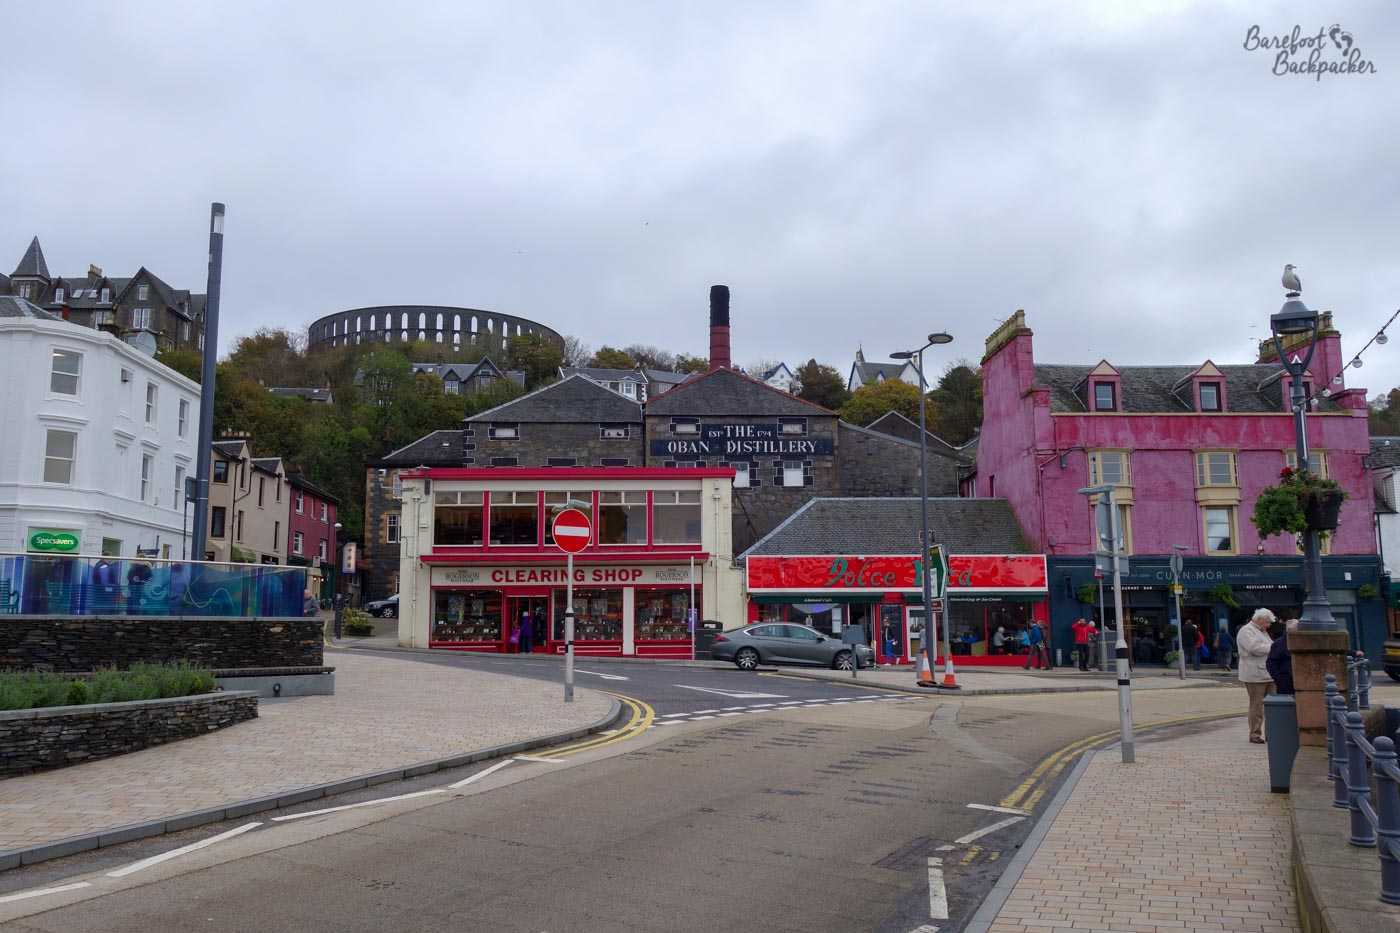 Oban town centre. Centre view, slightly in the background, is the Oban Distillery, complete with chimney. Other buildings are around, including a bright pink one on the right of shot. Road in foreground, that weird circular structure on the hilltop in the background again. What is that strange structure?